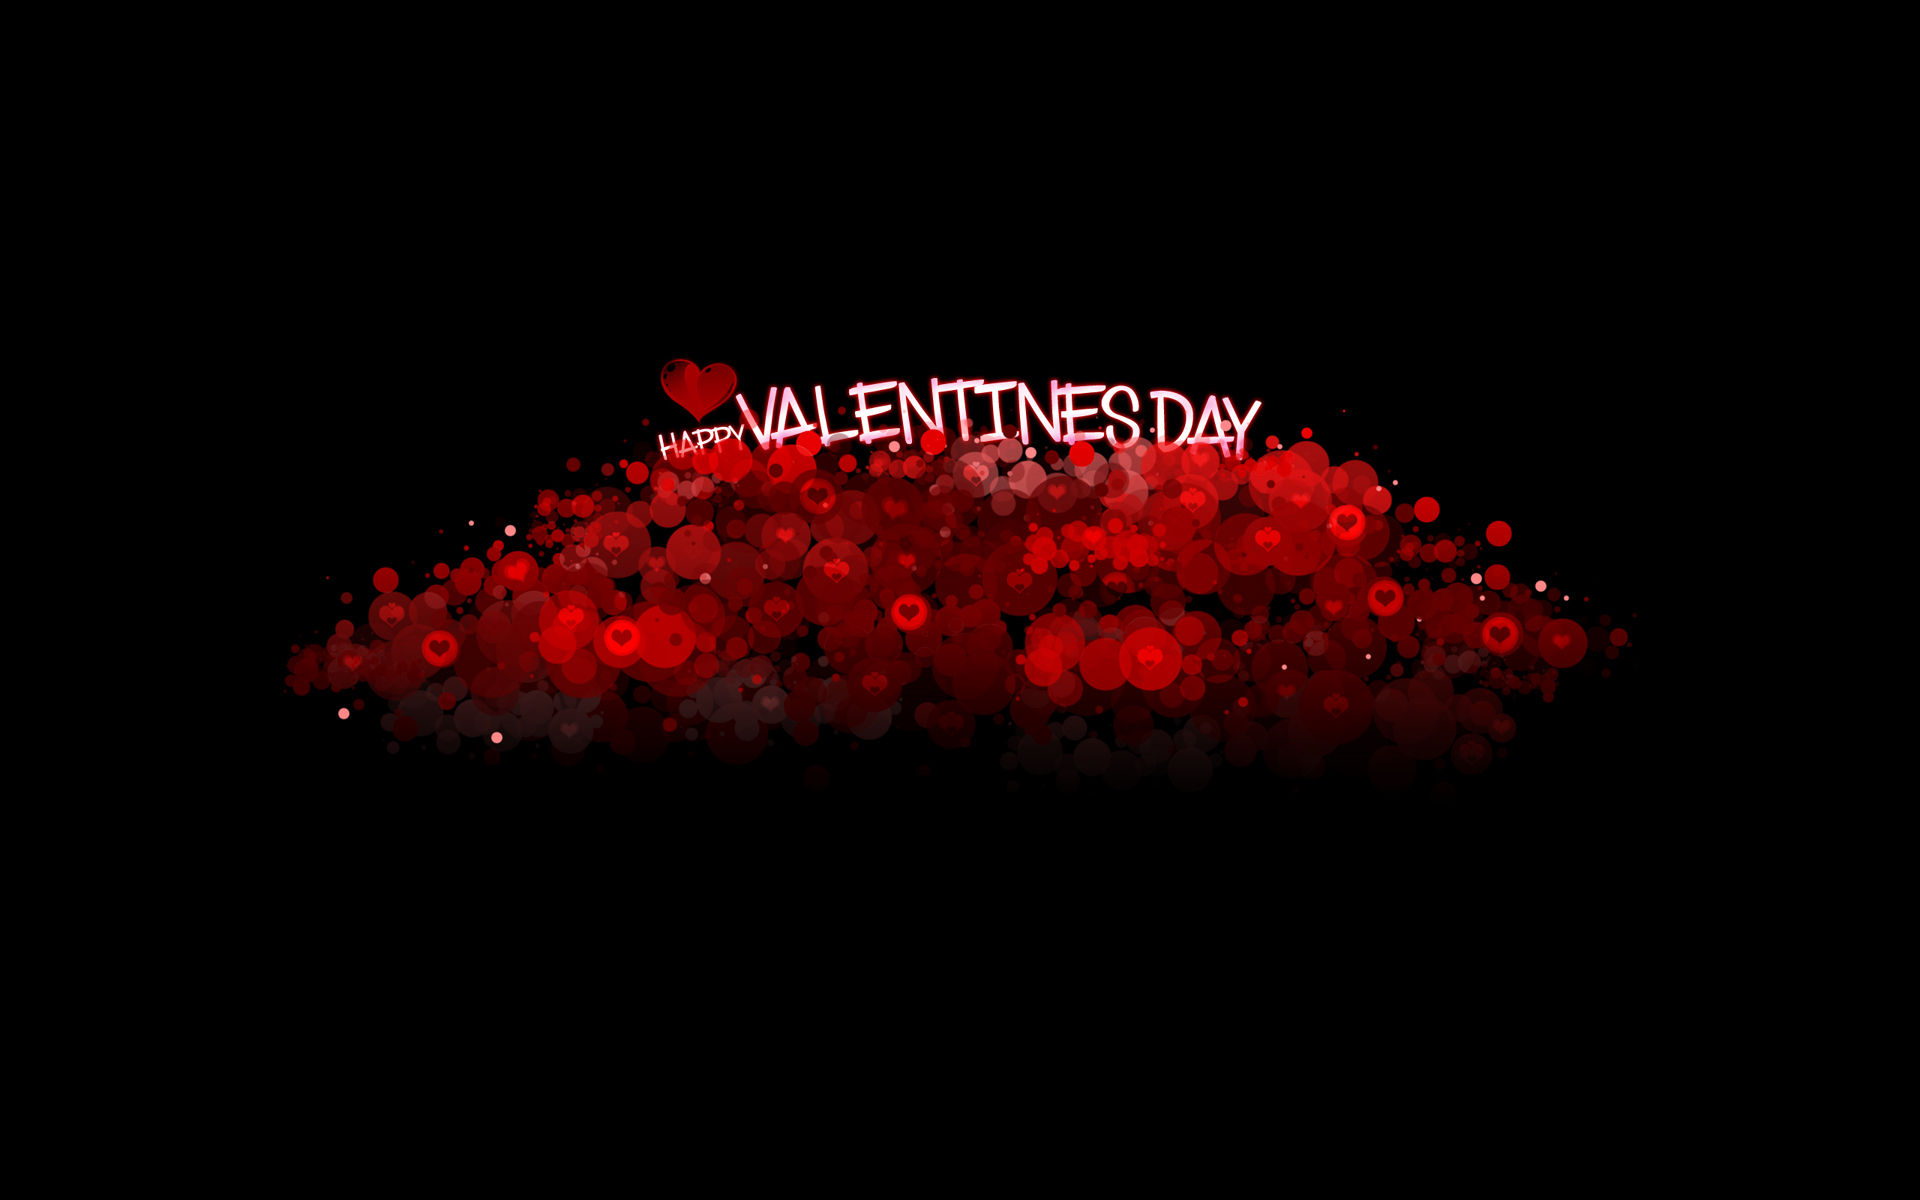 valentines day backgrounds wallpapers - photo #23